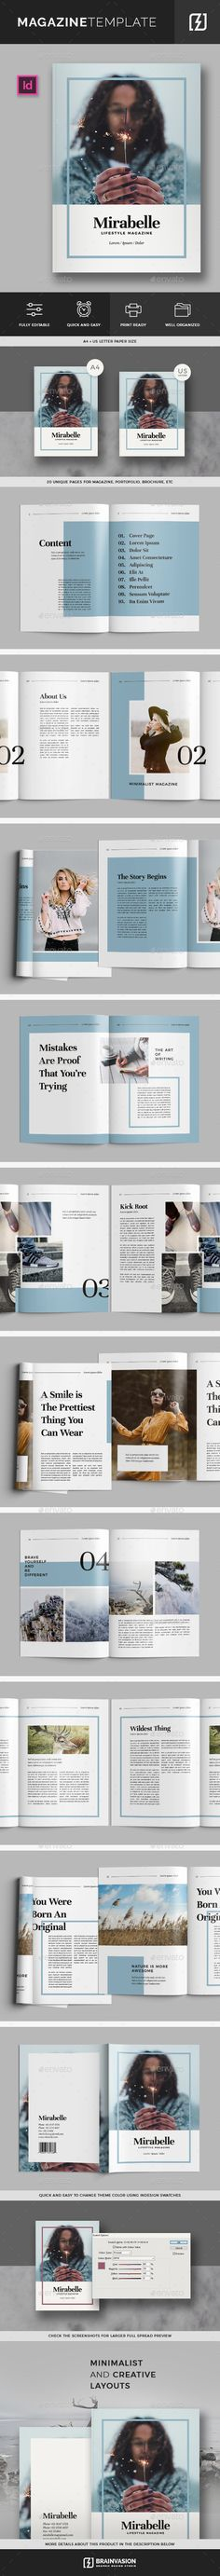 Magazine Template Vol.02 by Brainvasion Minimal and creative template can be used for magazine, portofolio, brochure, etc. Features20 Unique pages A4&US Letter size Print